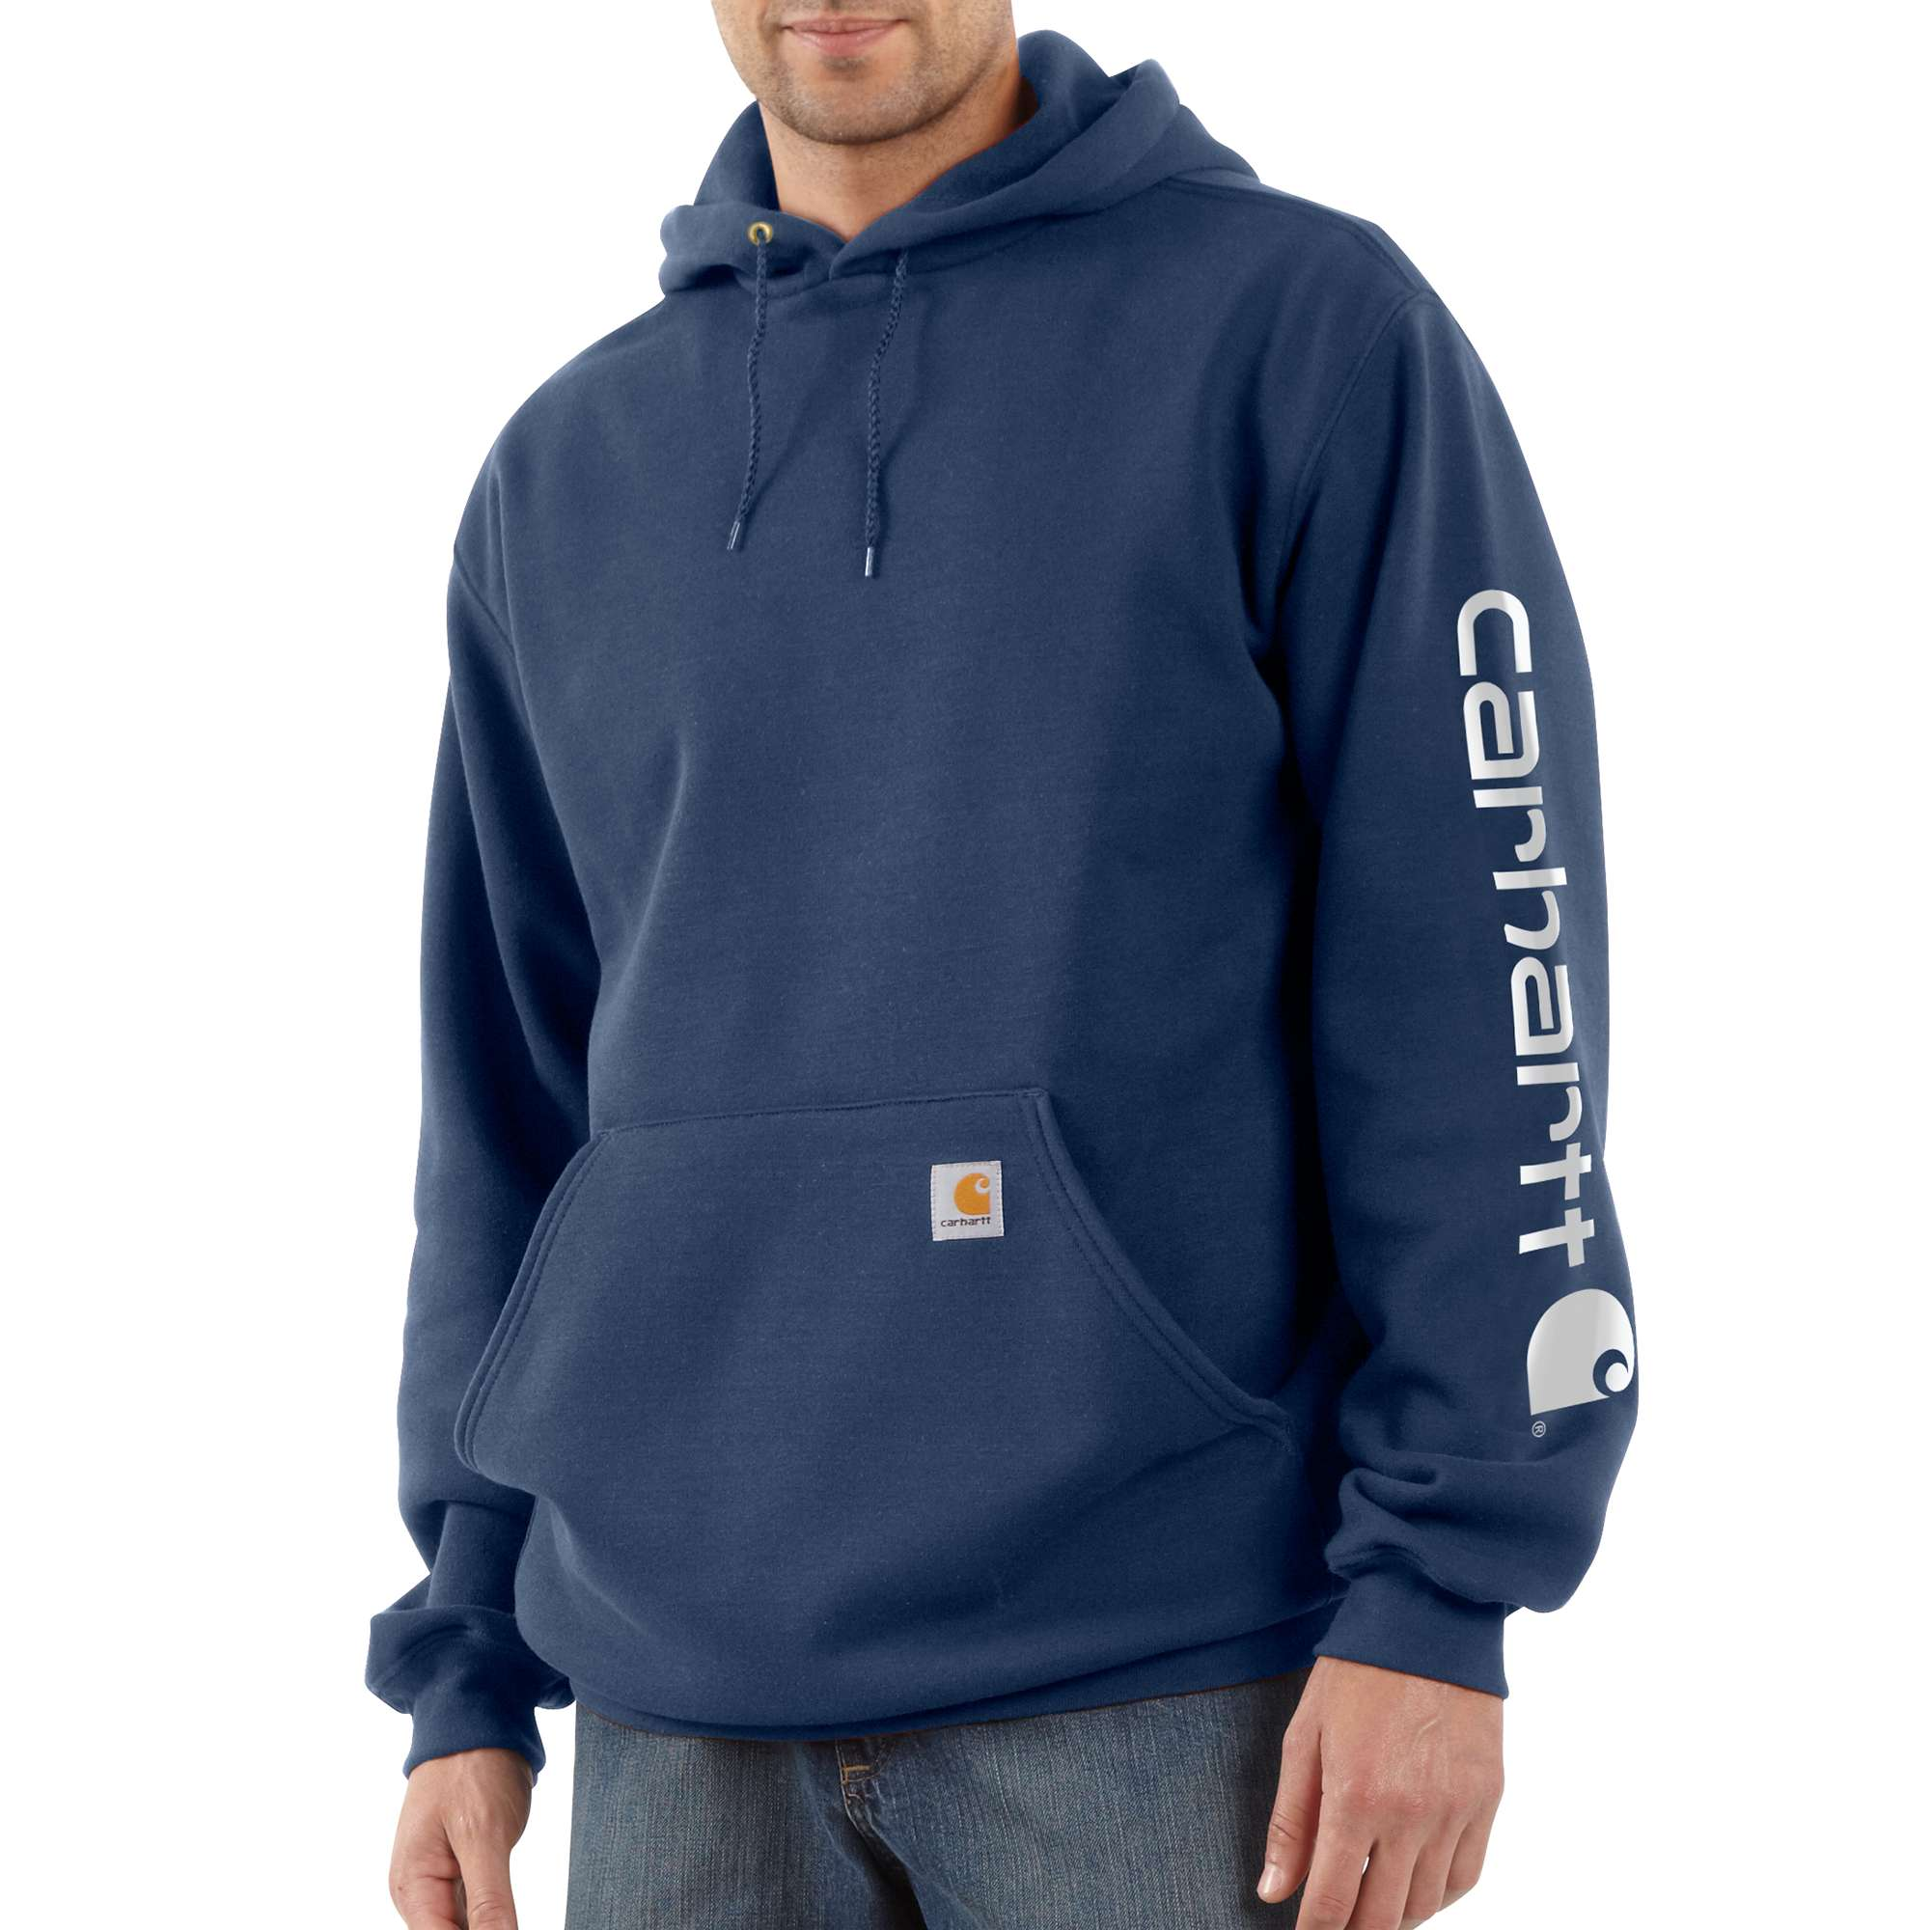 Men's Midweight Signature Logo Sleeve Hooded Sweat, Navy, swatch